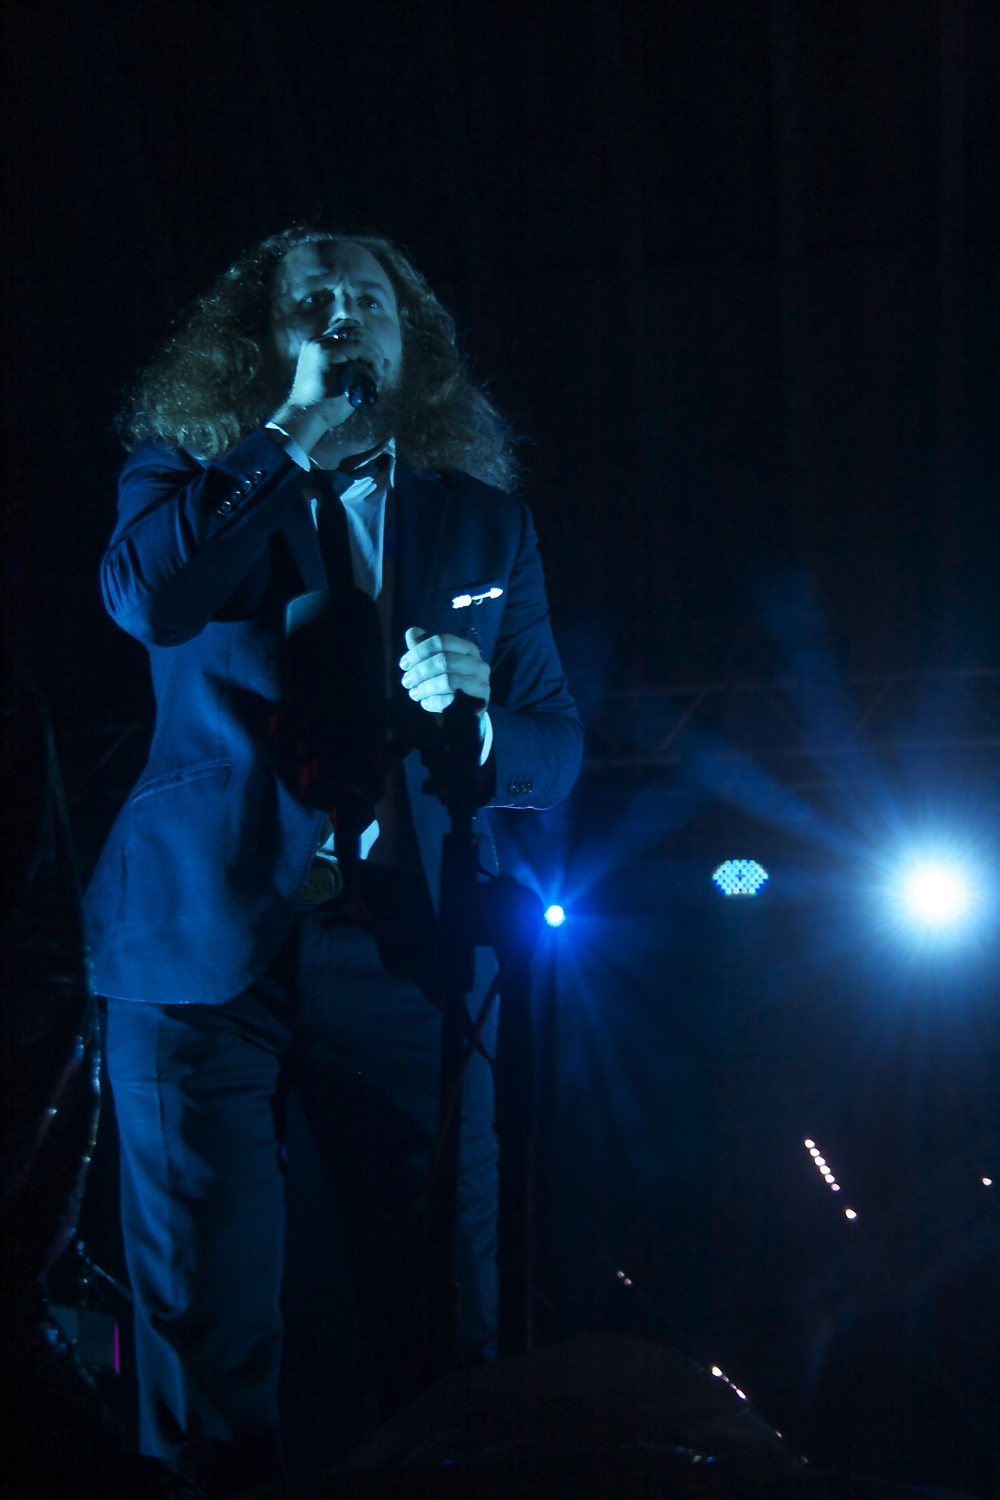 Jim James of My Morning Jacket Photo Credit: Amanda Spilos